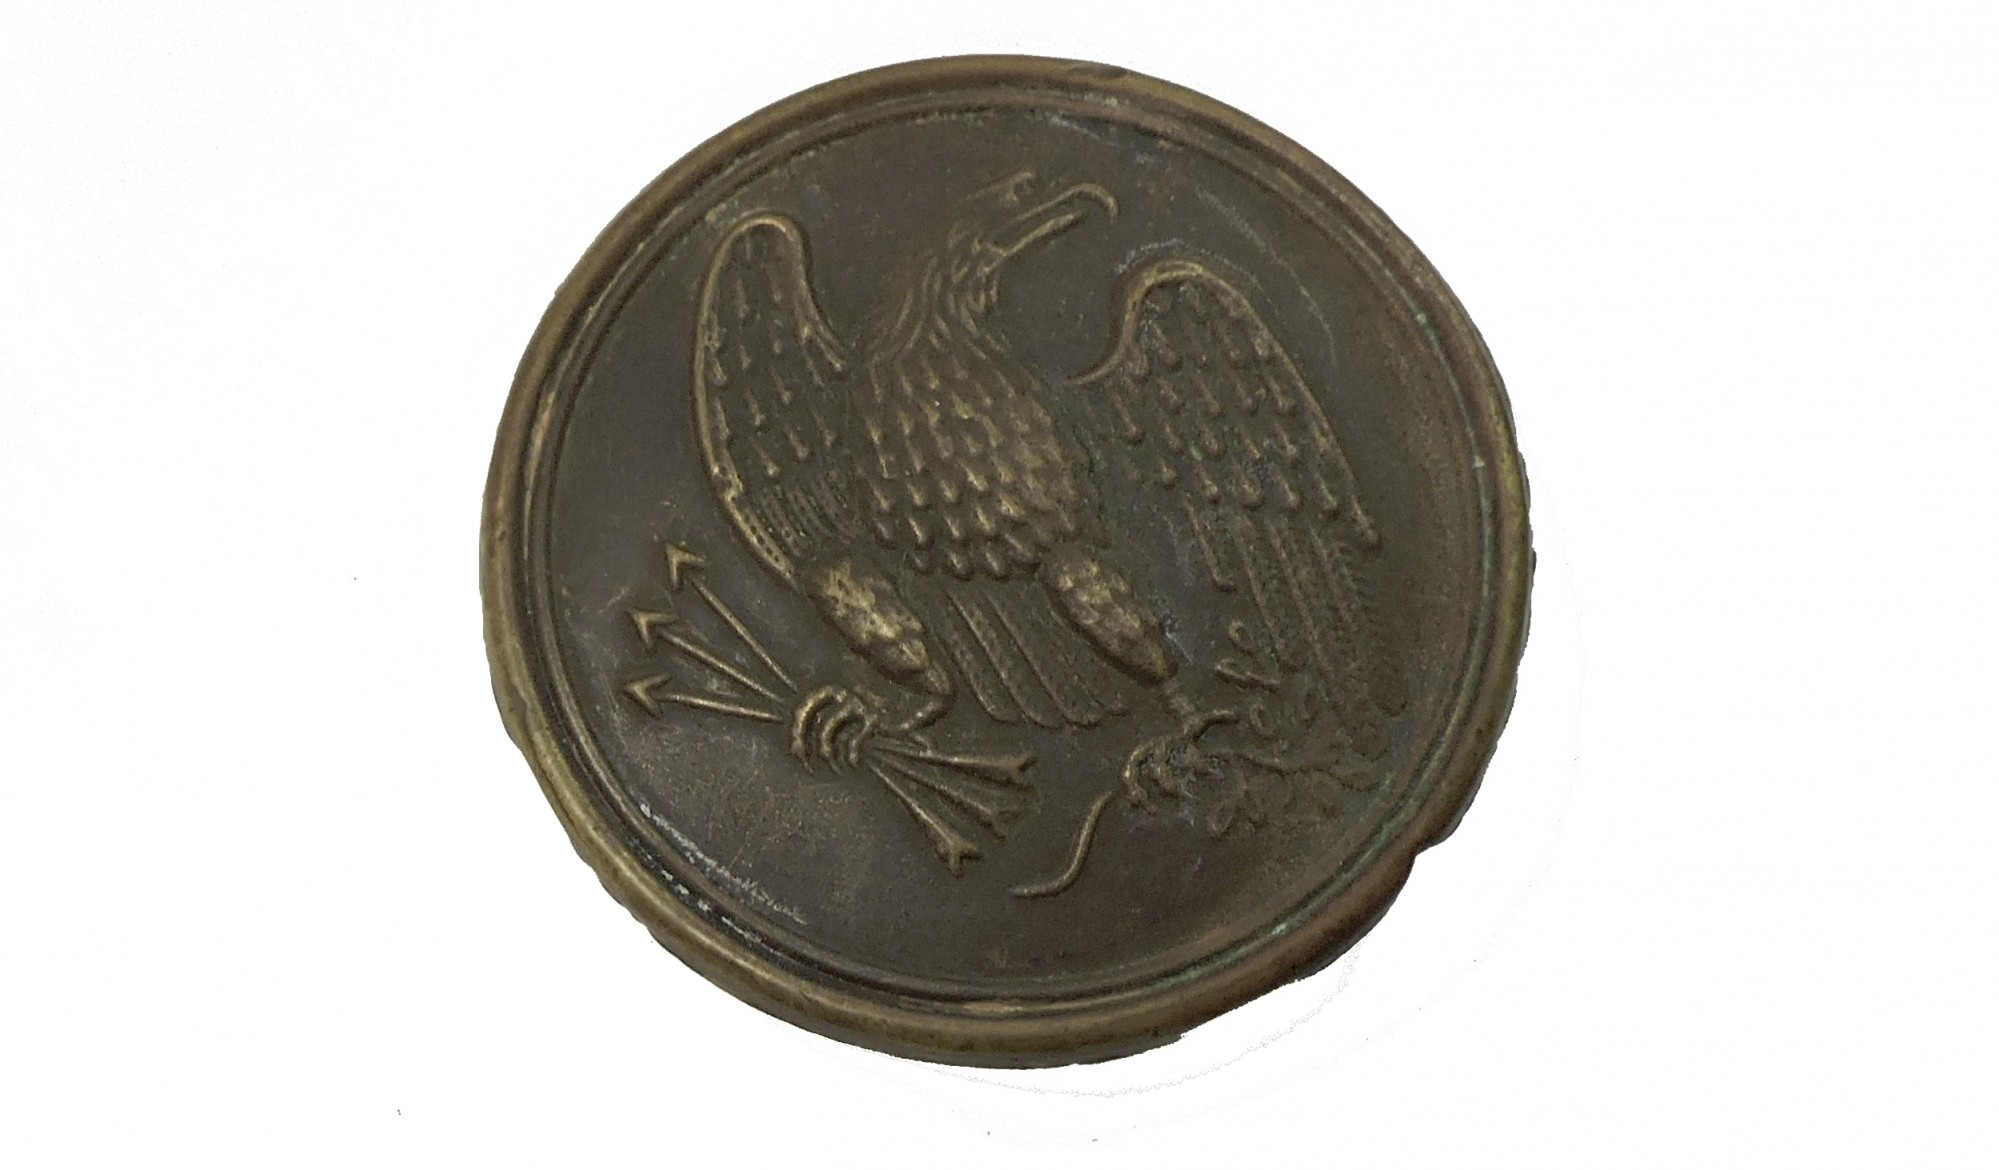 US PATTERN 1826 EAGLE BREAST PLATE WITH MAKER'S MARK